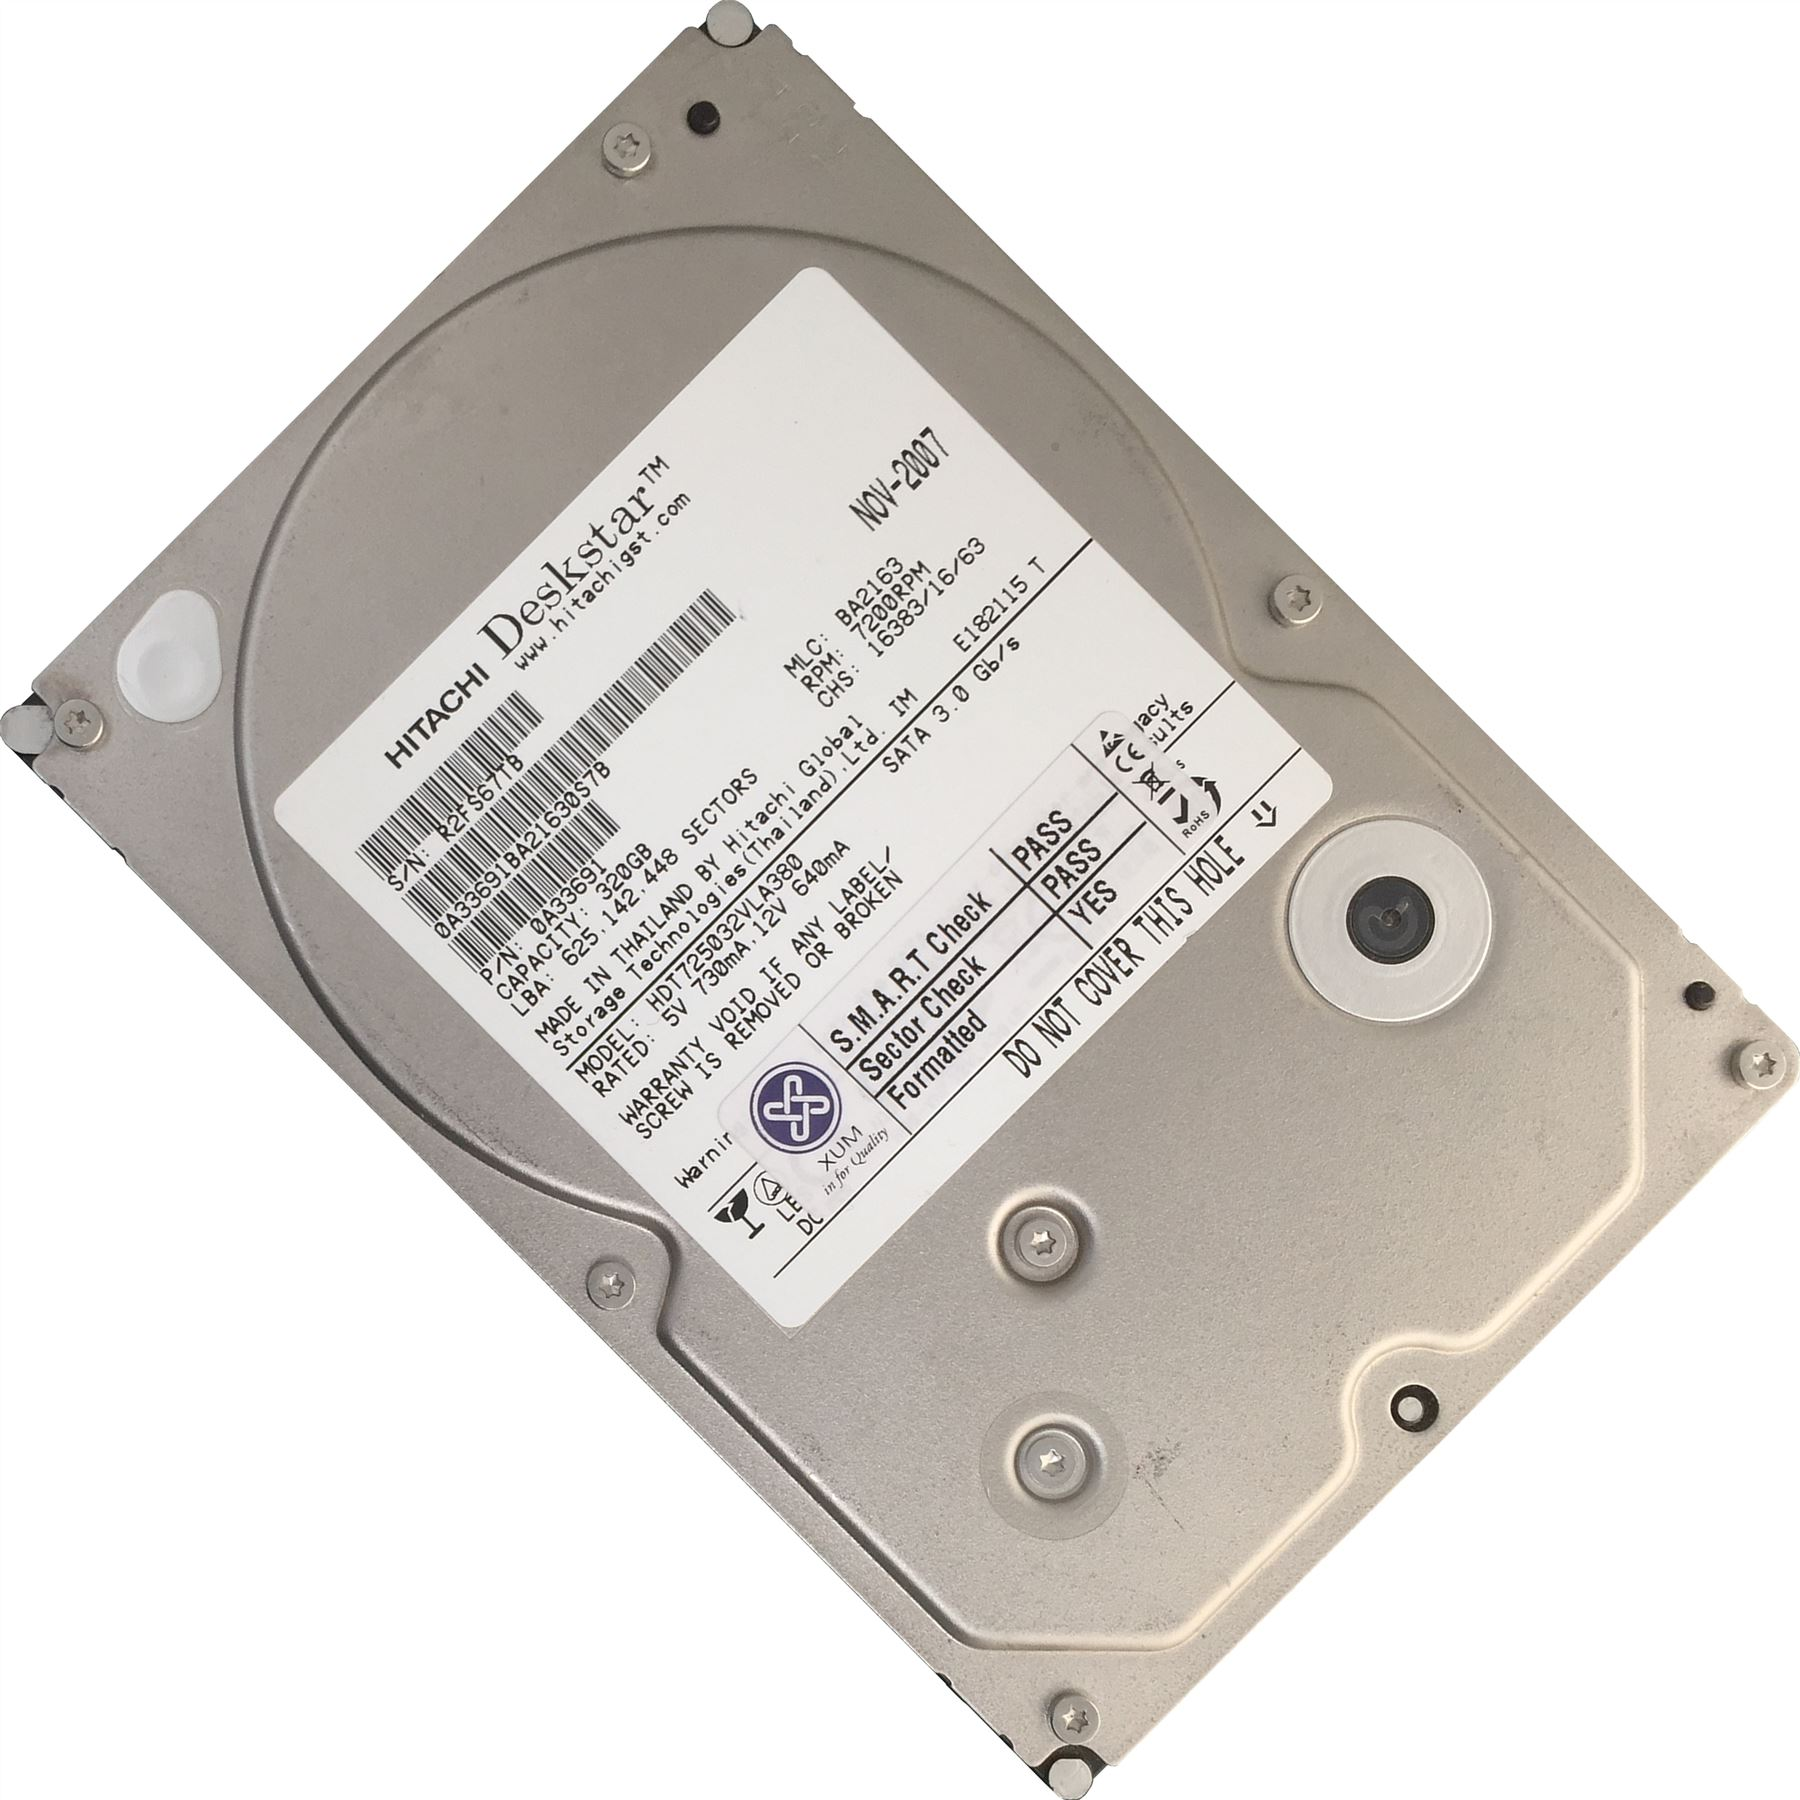 320GB-3-5-034-POLLICI-SATA-hard-drive-interno-desktop-HDD-PC-CCTV-DVR-disco-lotto